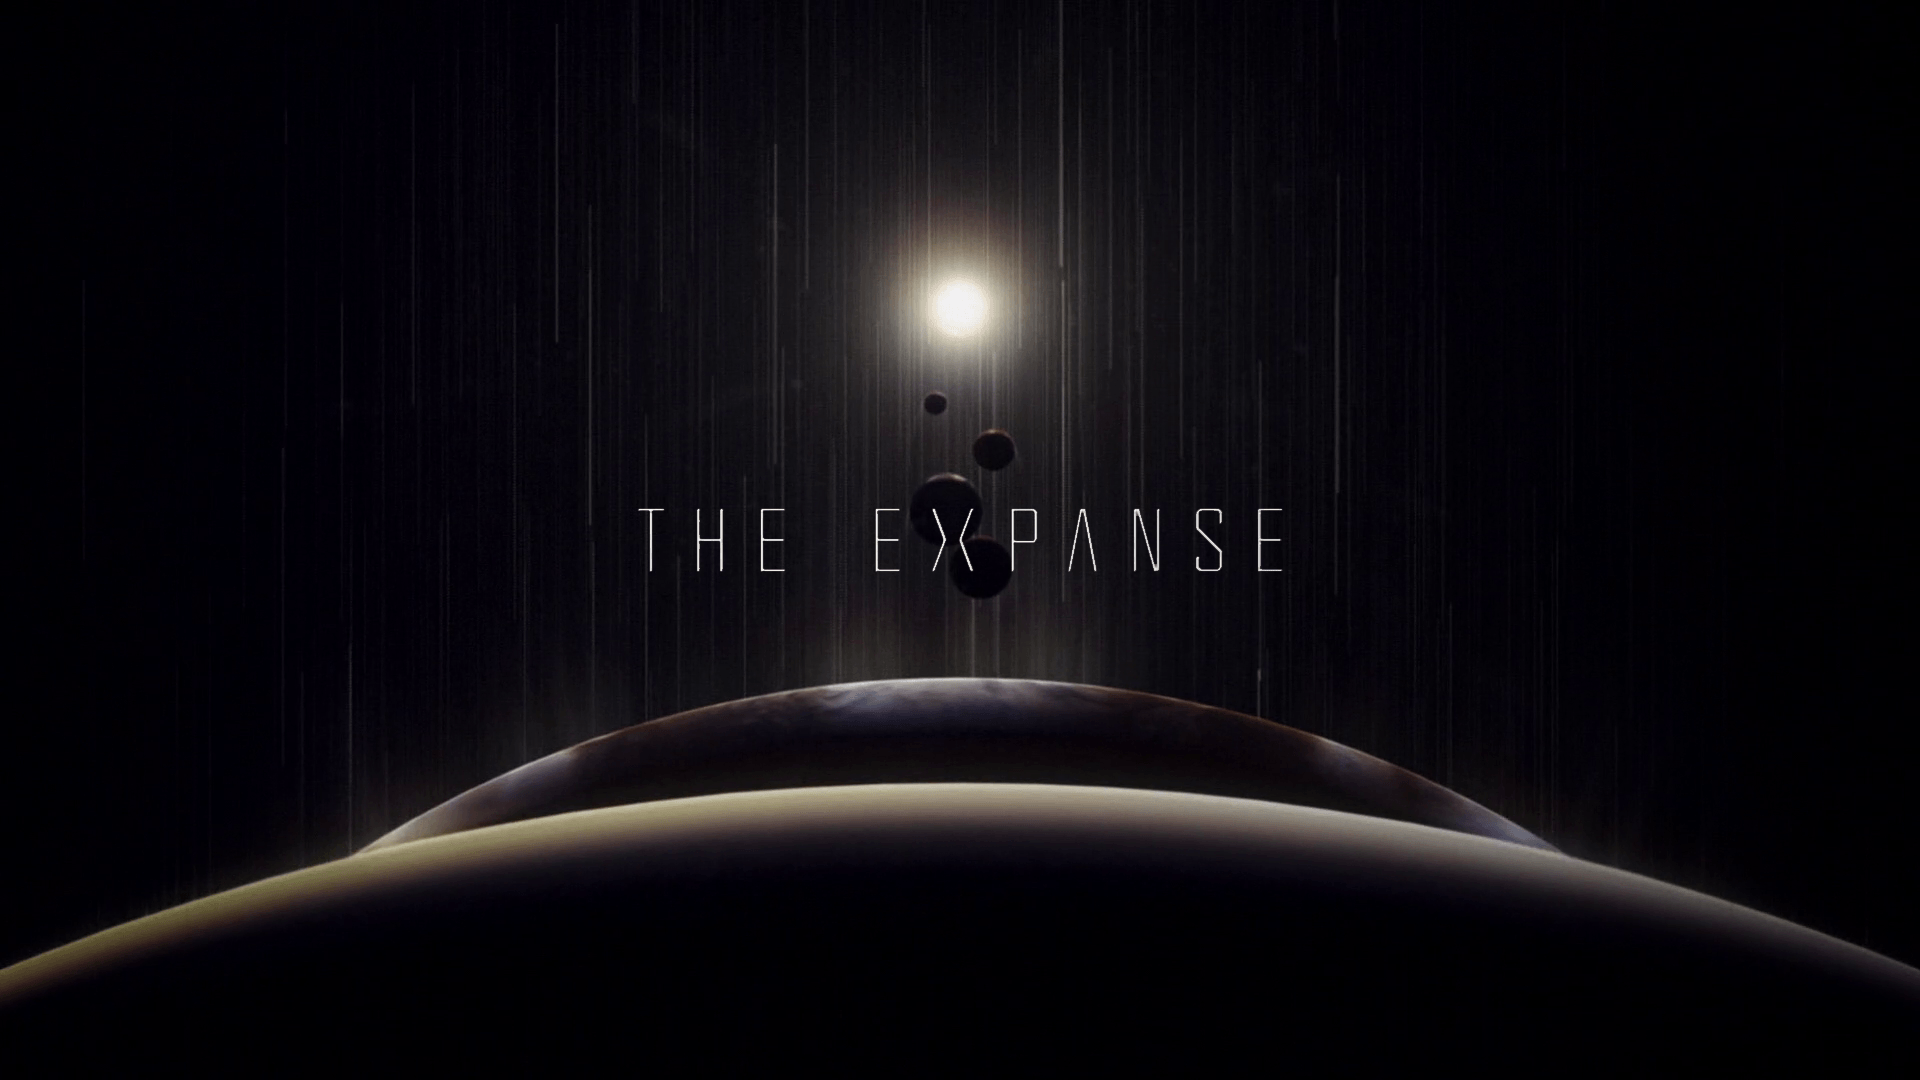 The Expanse Wallpapers - Wallpaper Cave